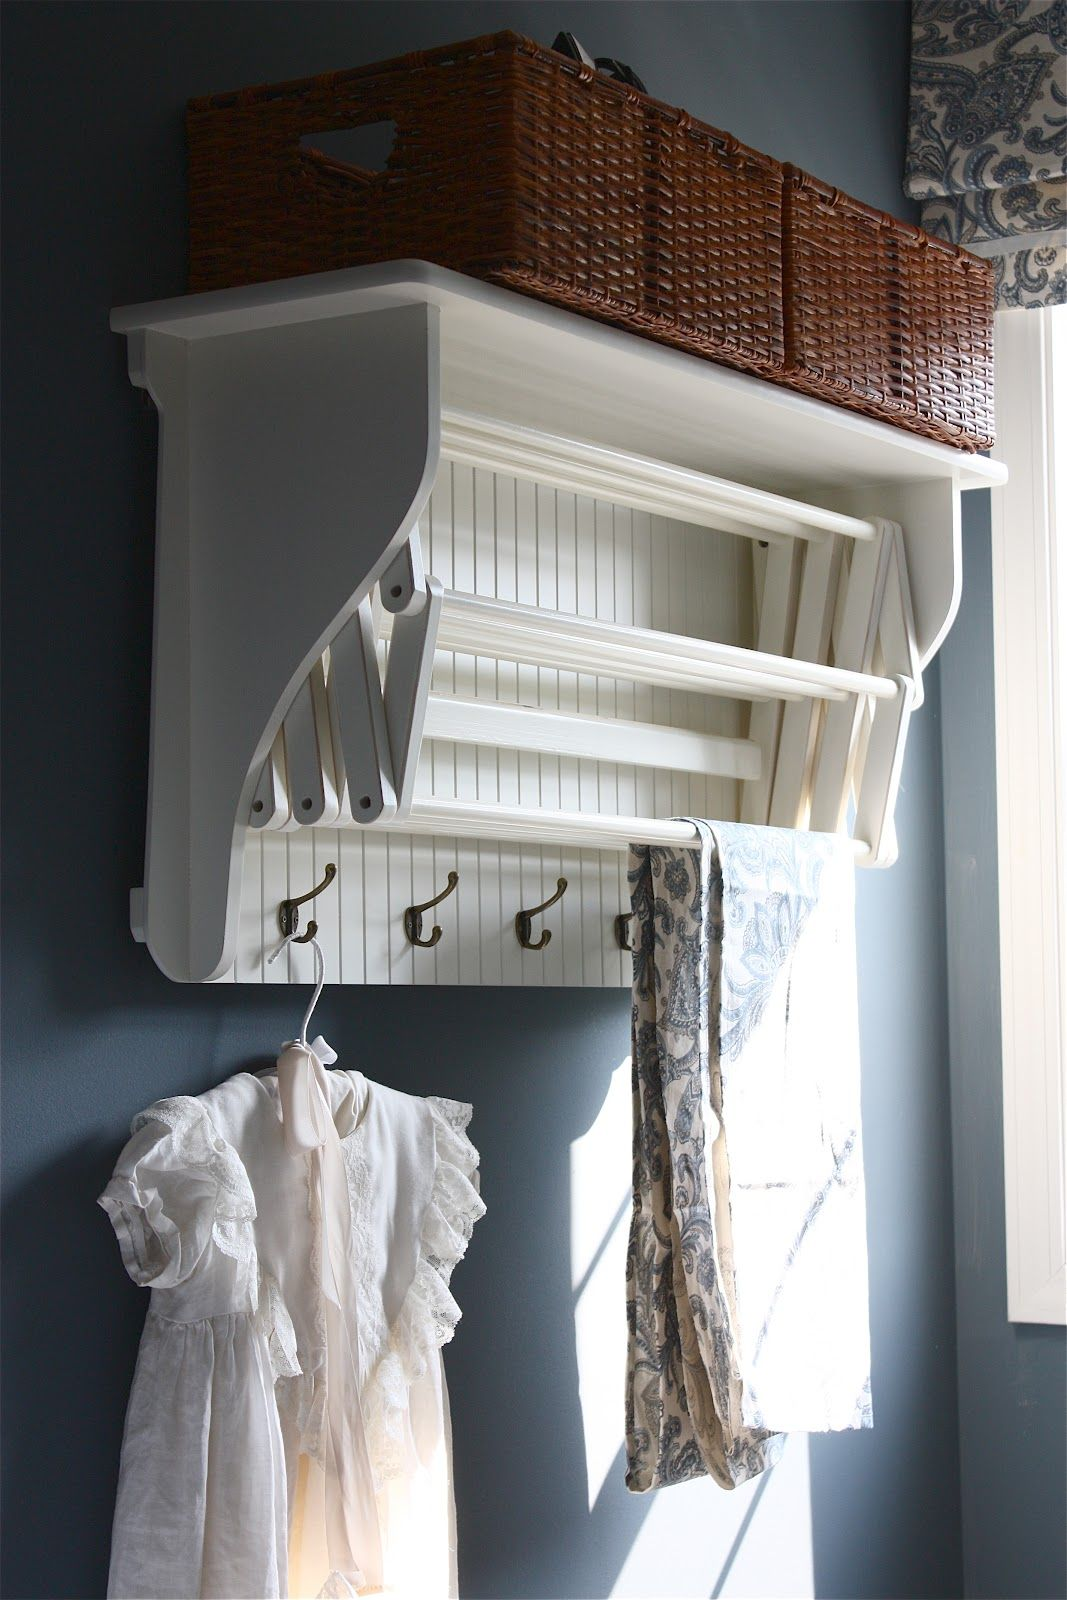 Drying rack pulls out home improvements pinterest laundry room